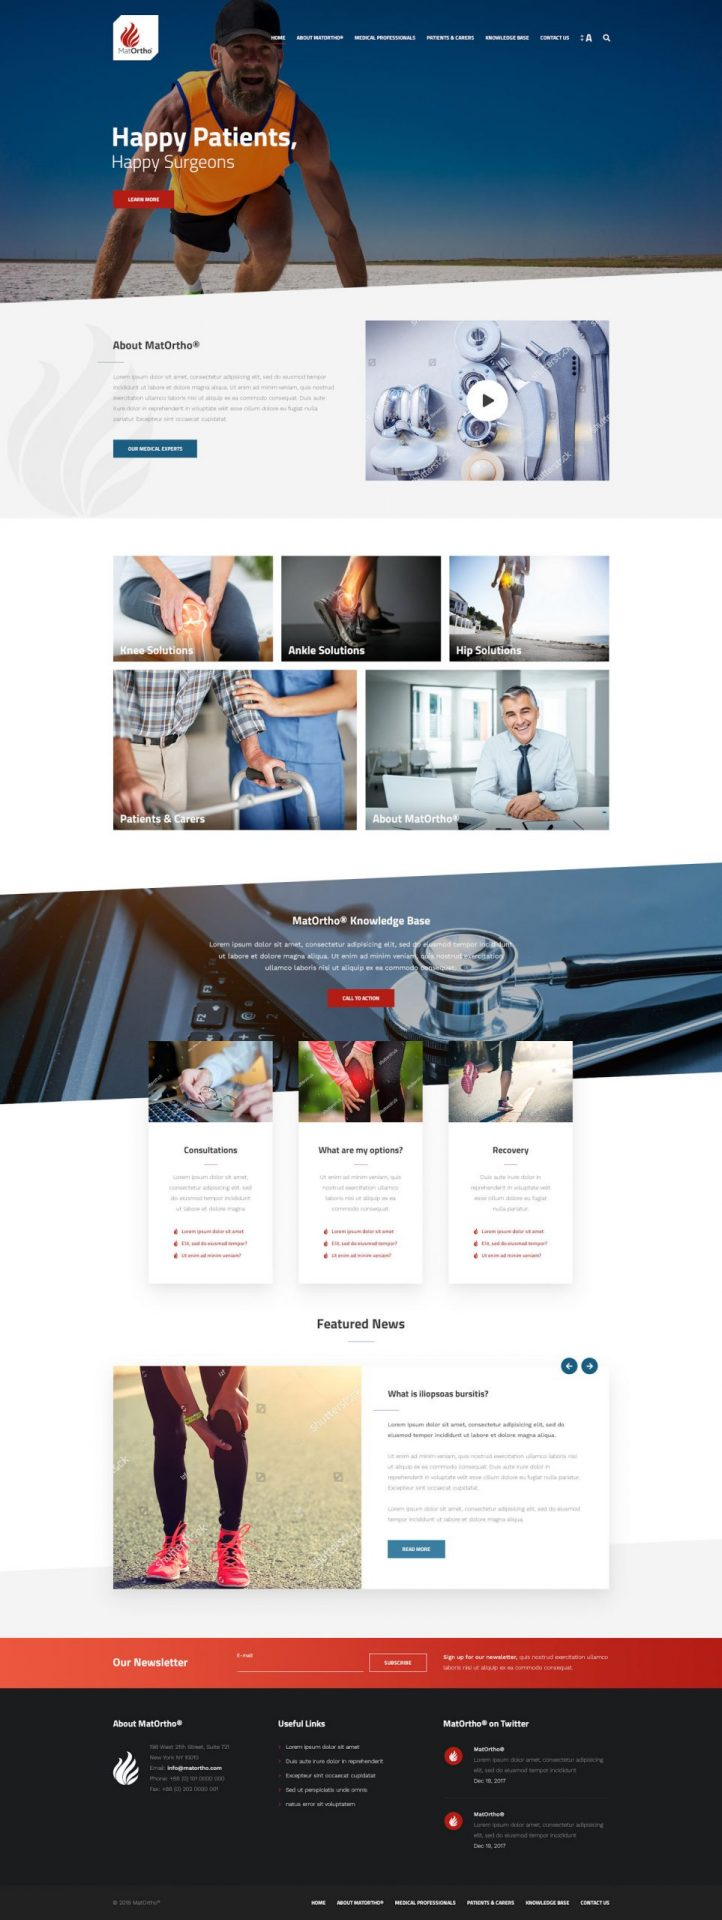 Professional WordPress Website for MatOrtho by Cude Design